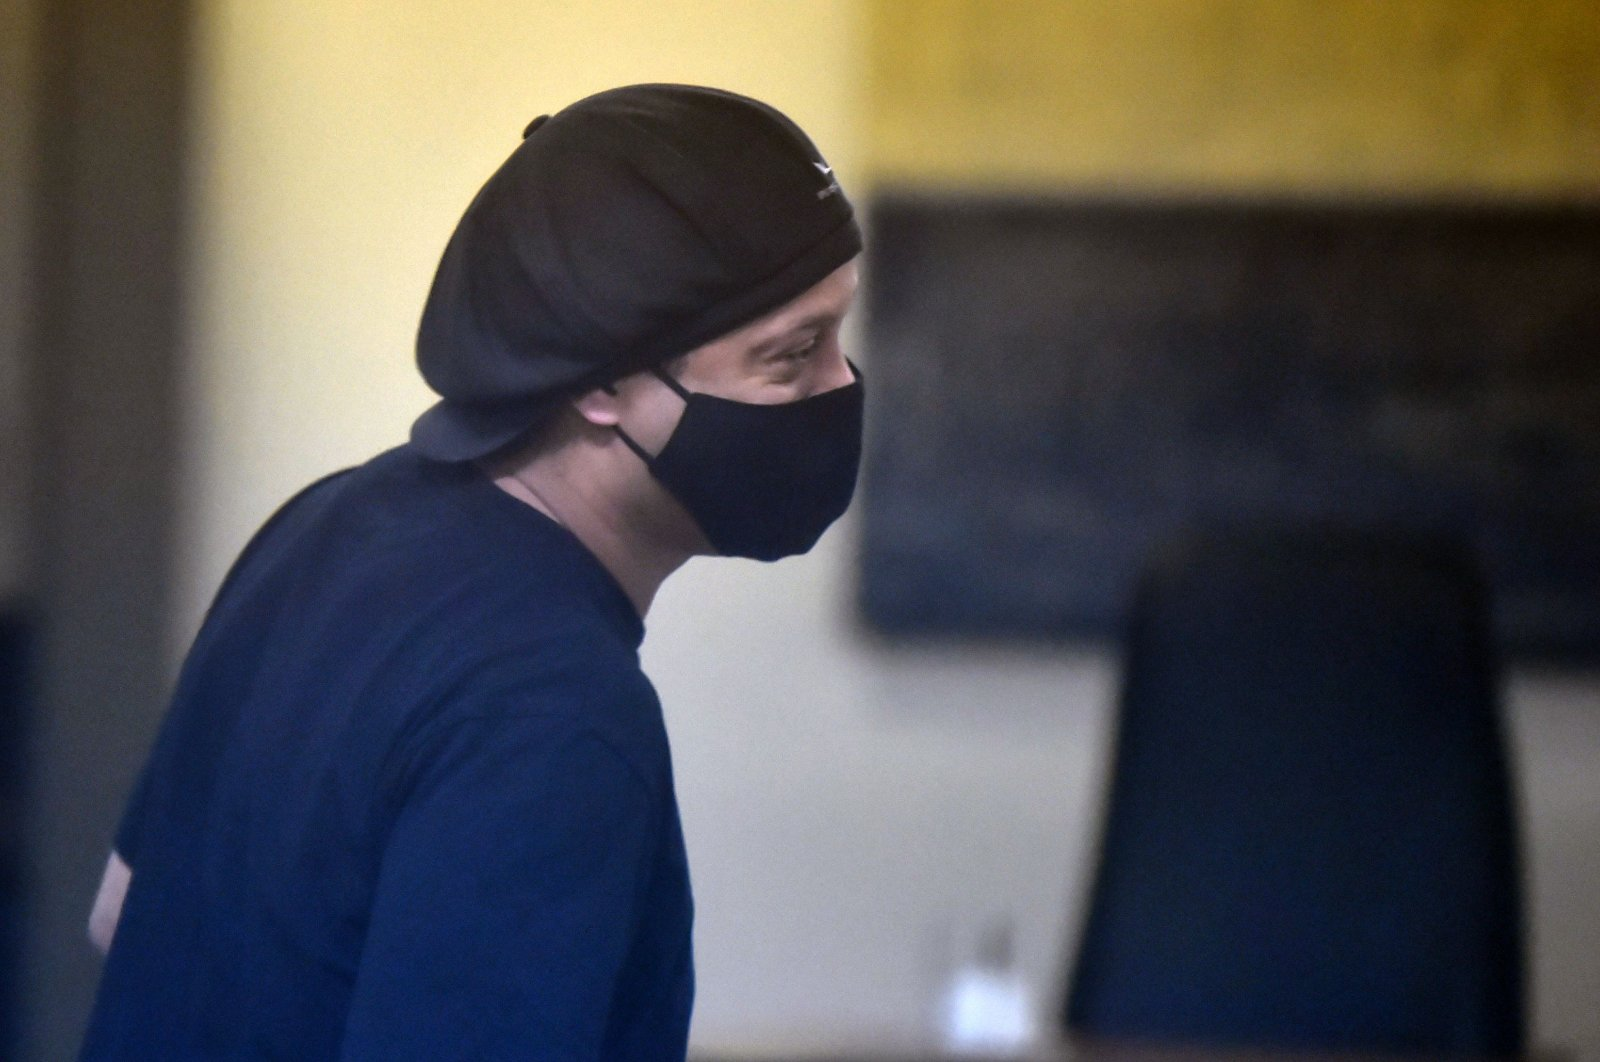 Brazilian retired football player Ronaldinho arrives for his hearing at the Asuncion's Justice Palace, in Asuncion, Paraguay, Aug. 24, 2020. (AFP Photo)